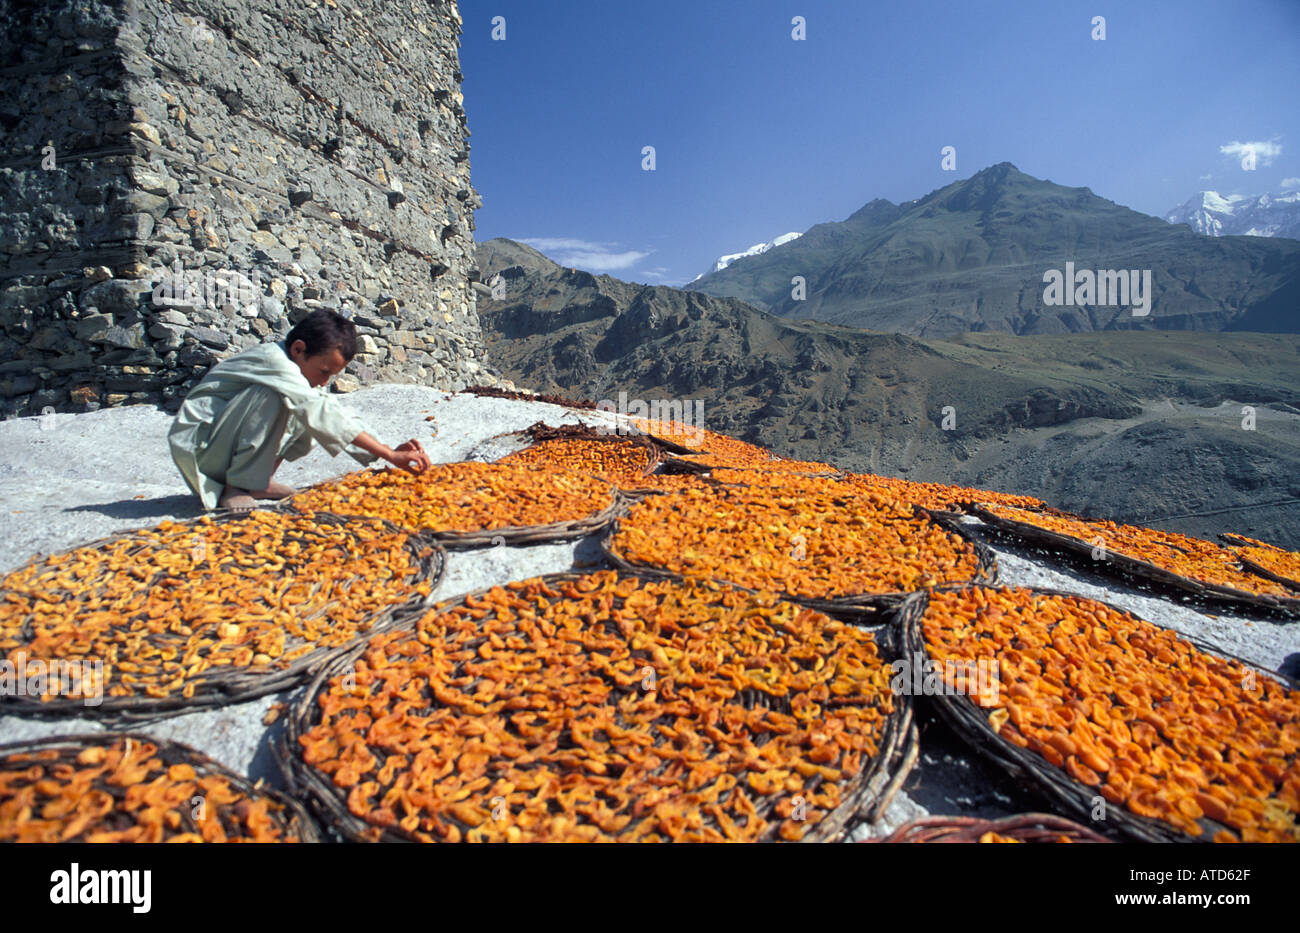 Apricots laid out in flat baskets to dry in the baking Himalayan sun Karakoram Mountains Altit Fort Karimabad Pakistan Stock Photo